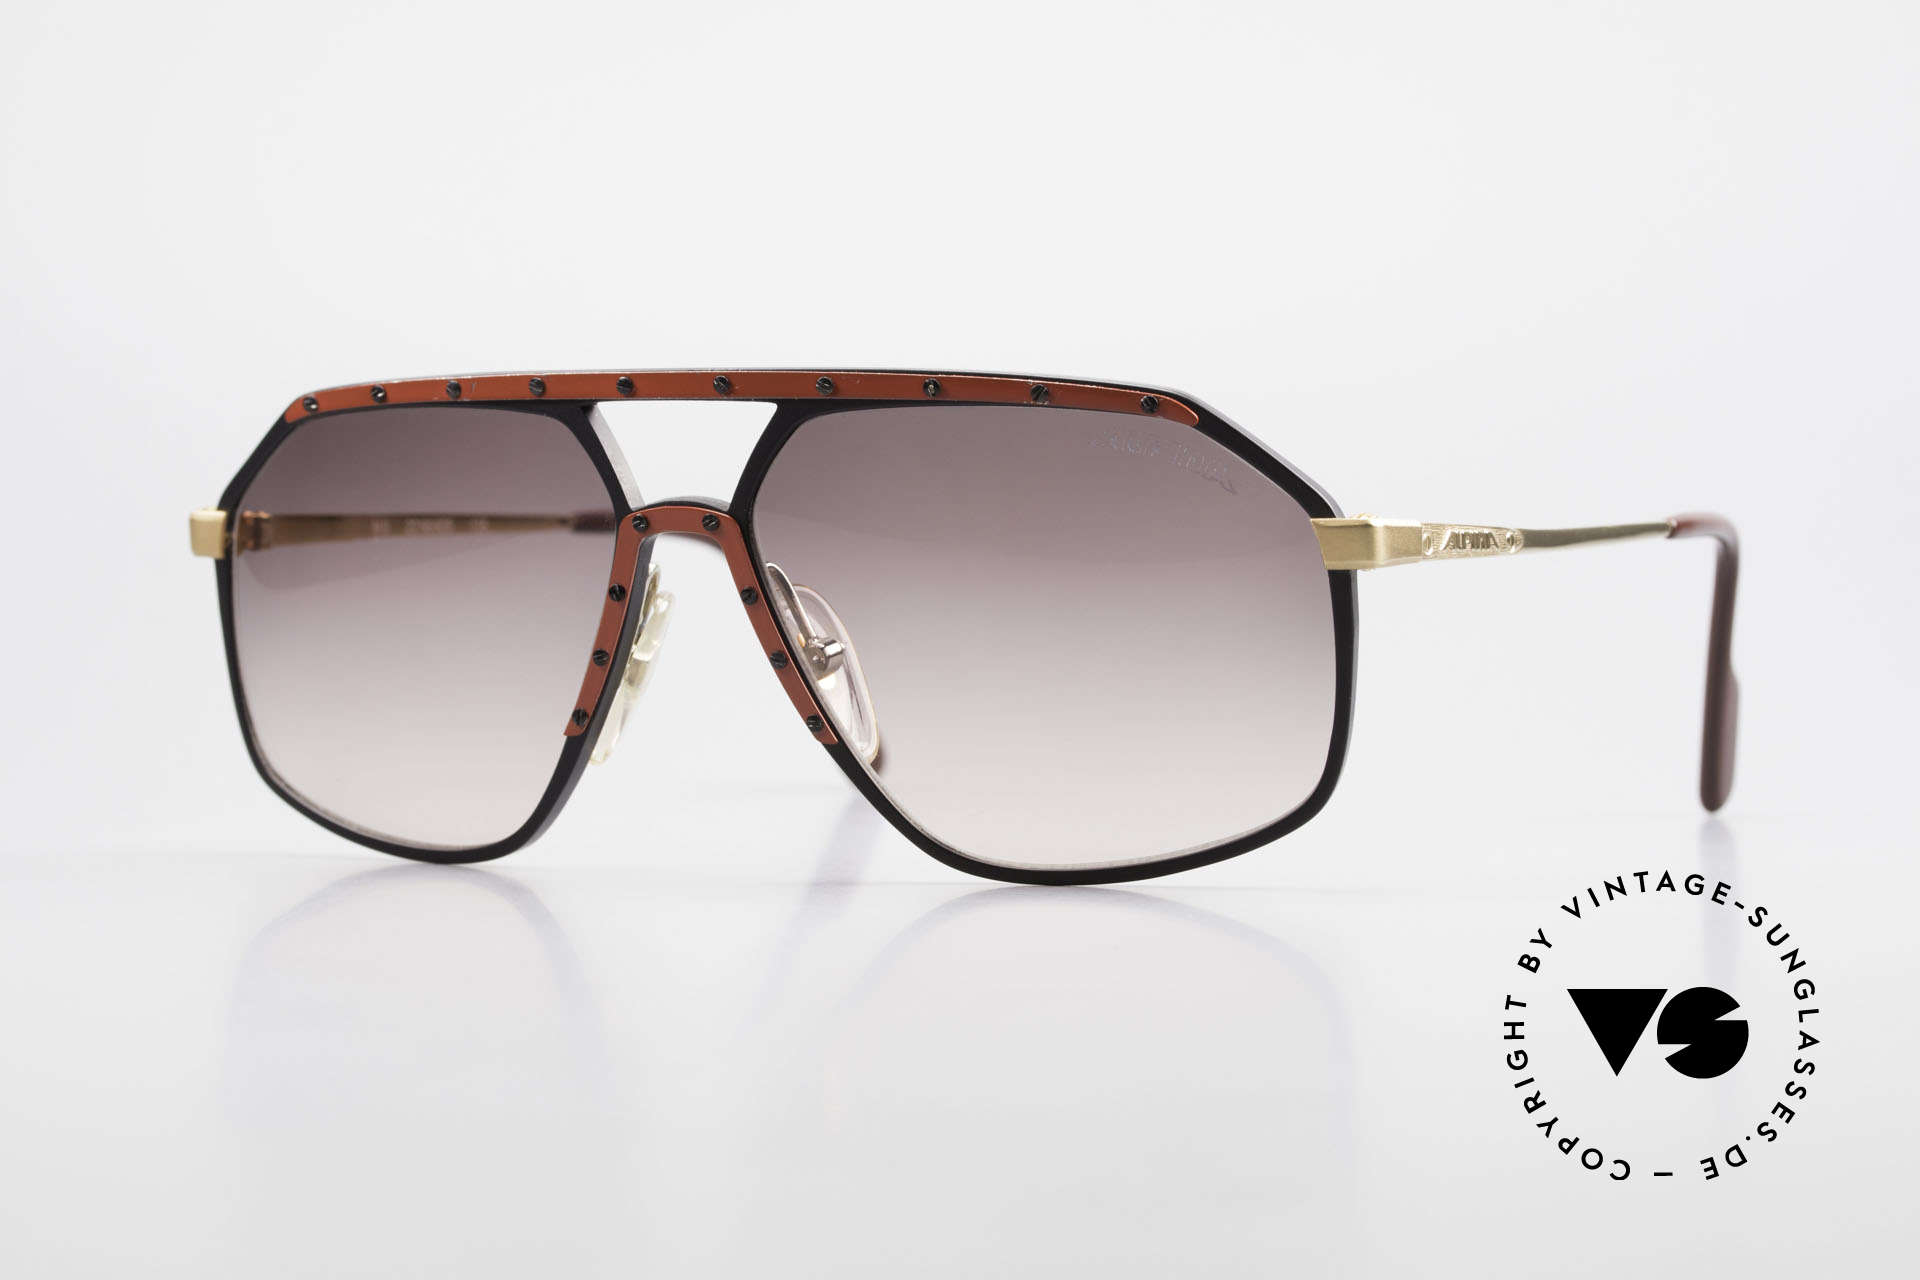 Alpina M6 Rare 80's Vintage Sunglasses, old Alpina M6 sunglasses in size 60/14, VINTAGE, Made for Men and Women